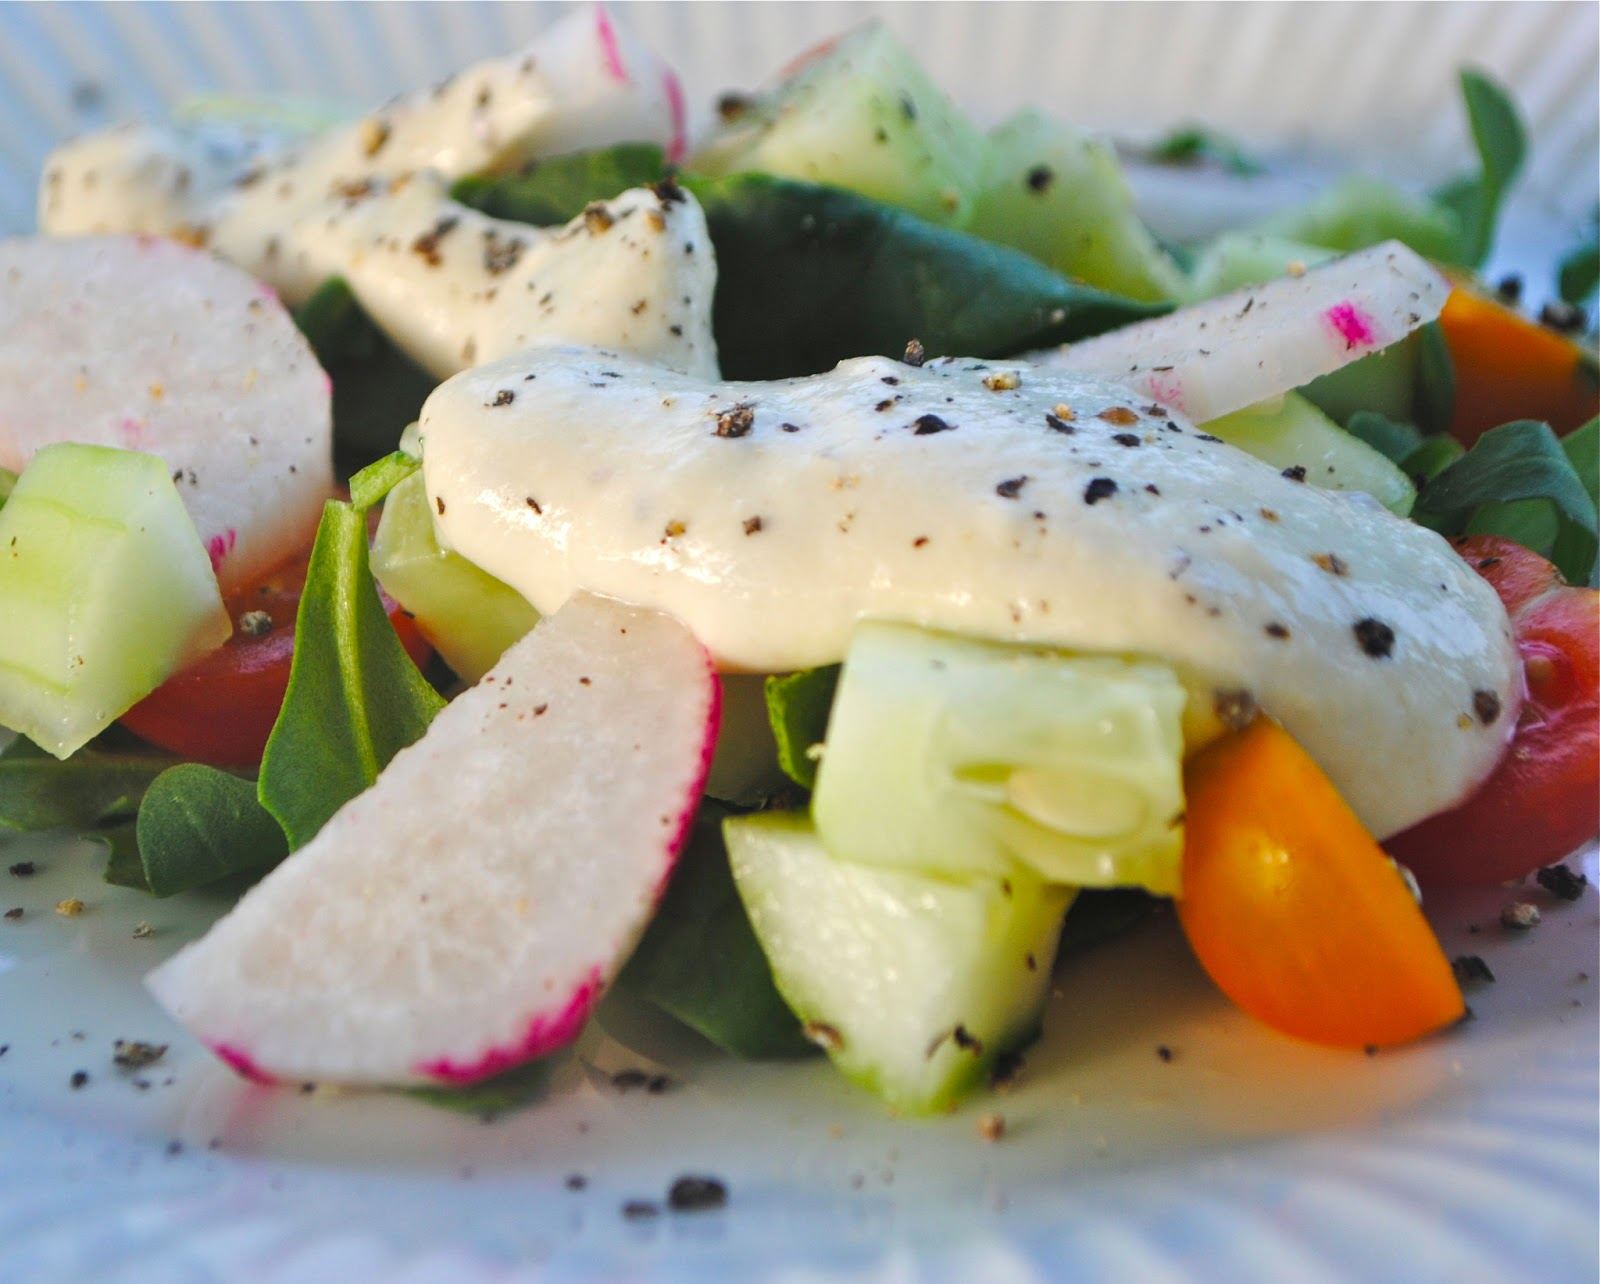 Arugula And Peach Salad With Creamy Chive Vinaigrette Recipes ...